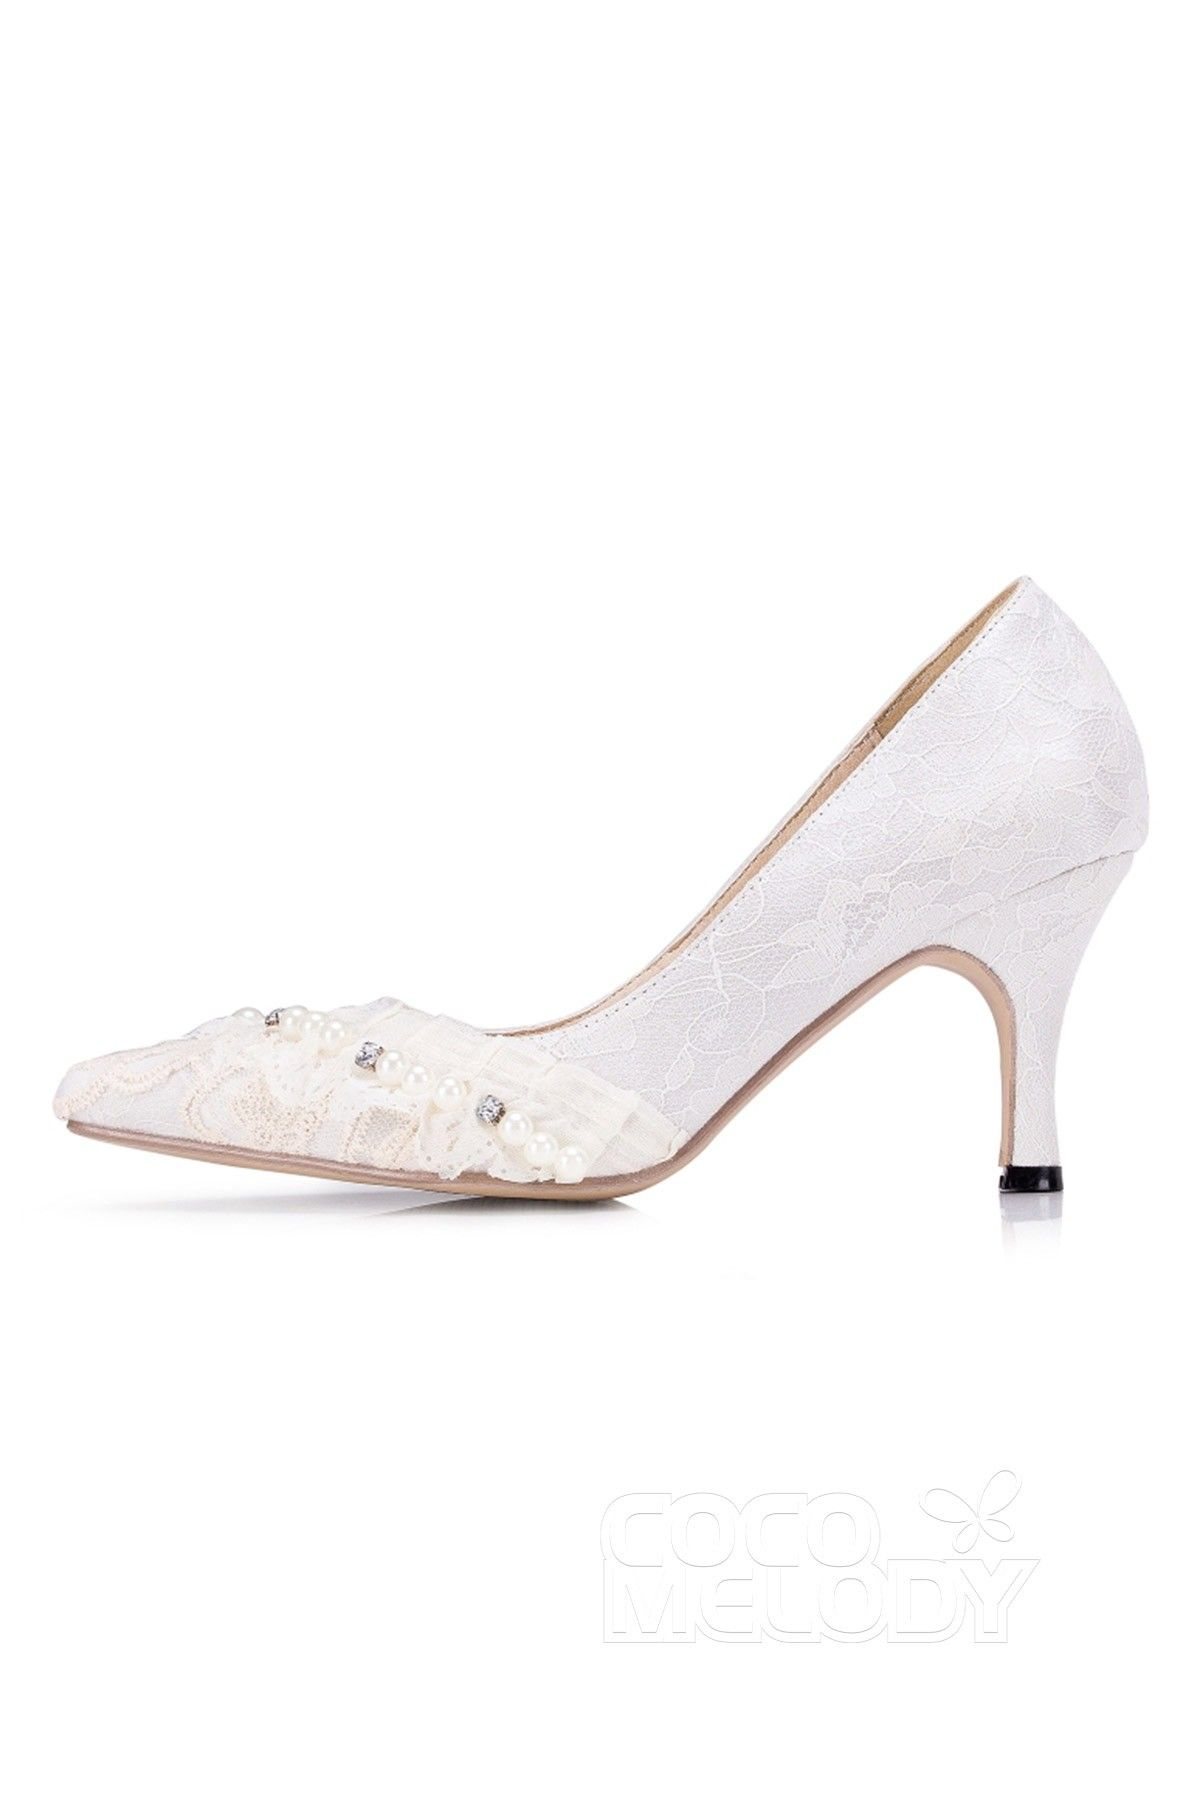 6464a5b06f72 Stiletto Heel 7.5cm Heel Lace Stitching Lace Pointed Toe Bridal Shoes  SWS16061  weddingshoes  weddingessentials  weddingaccessories  cocomelody